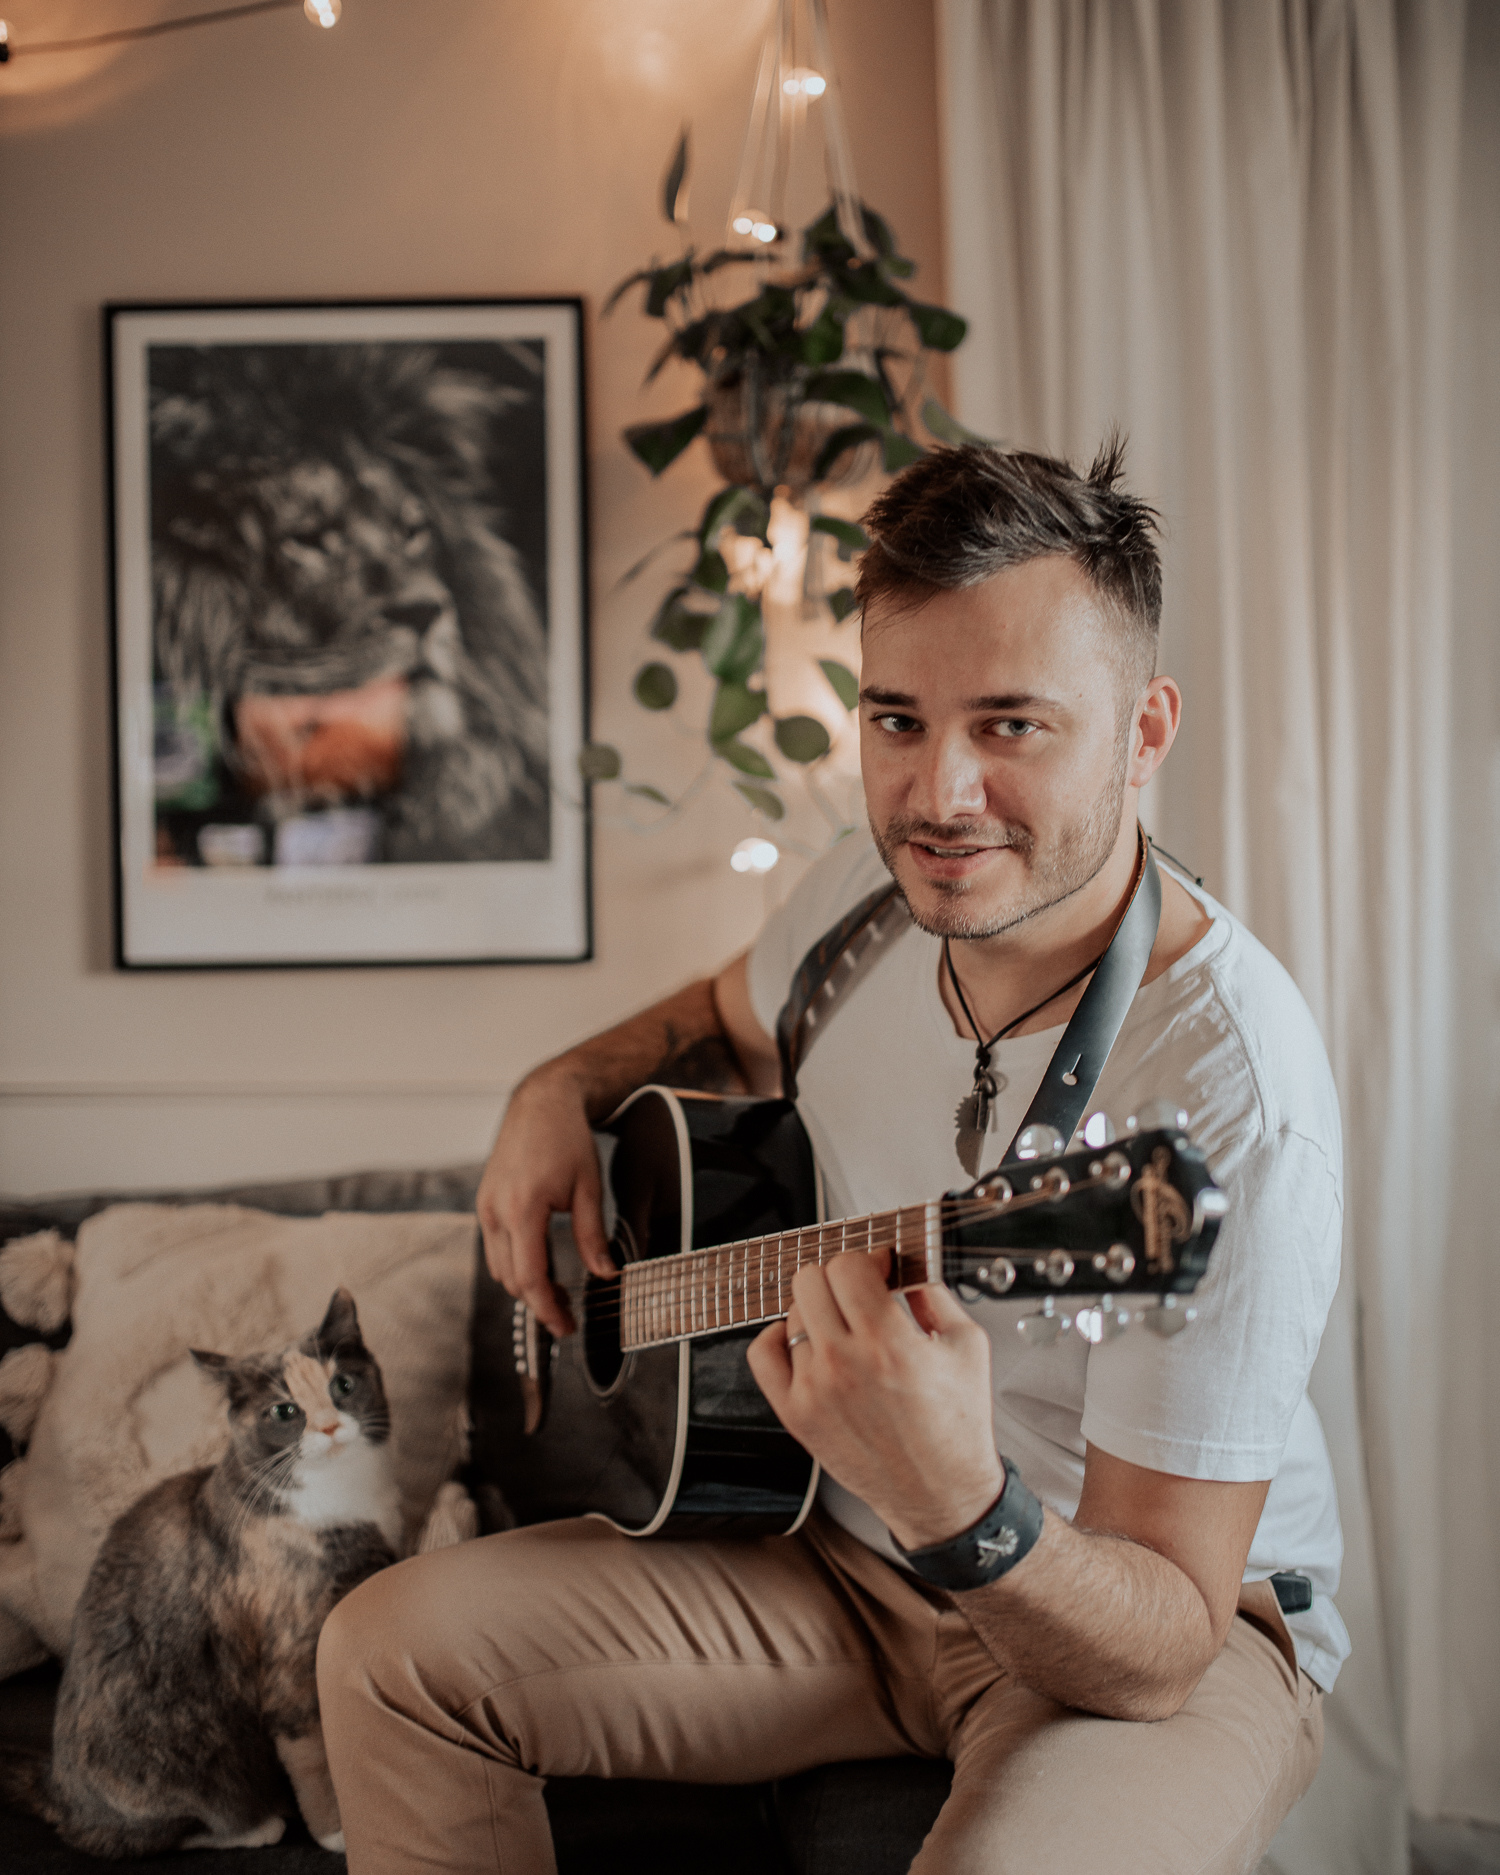 Man playing guitar at home with a cat by his side